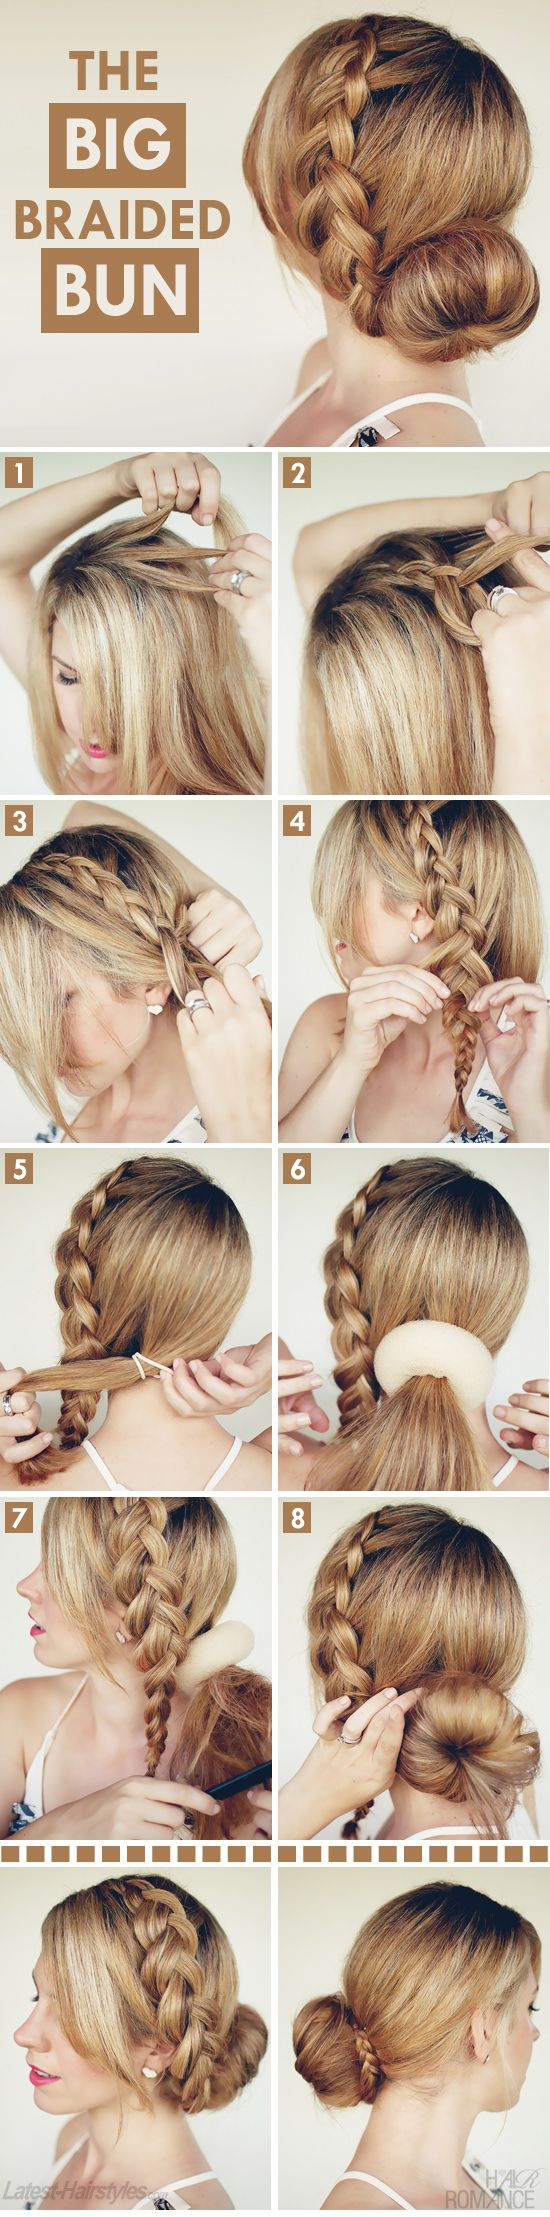 statement hairstyles for your new yearus eve party updo